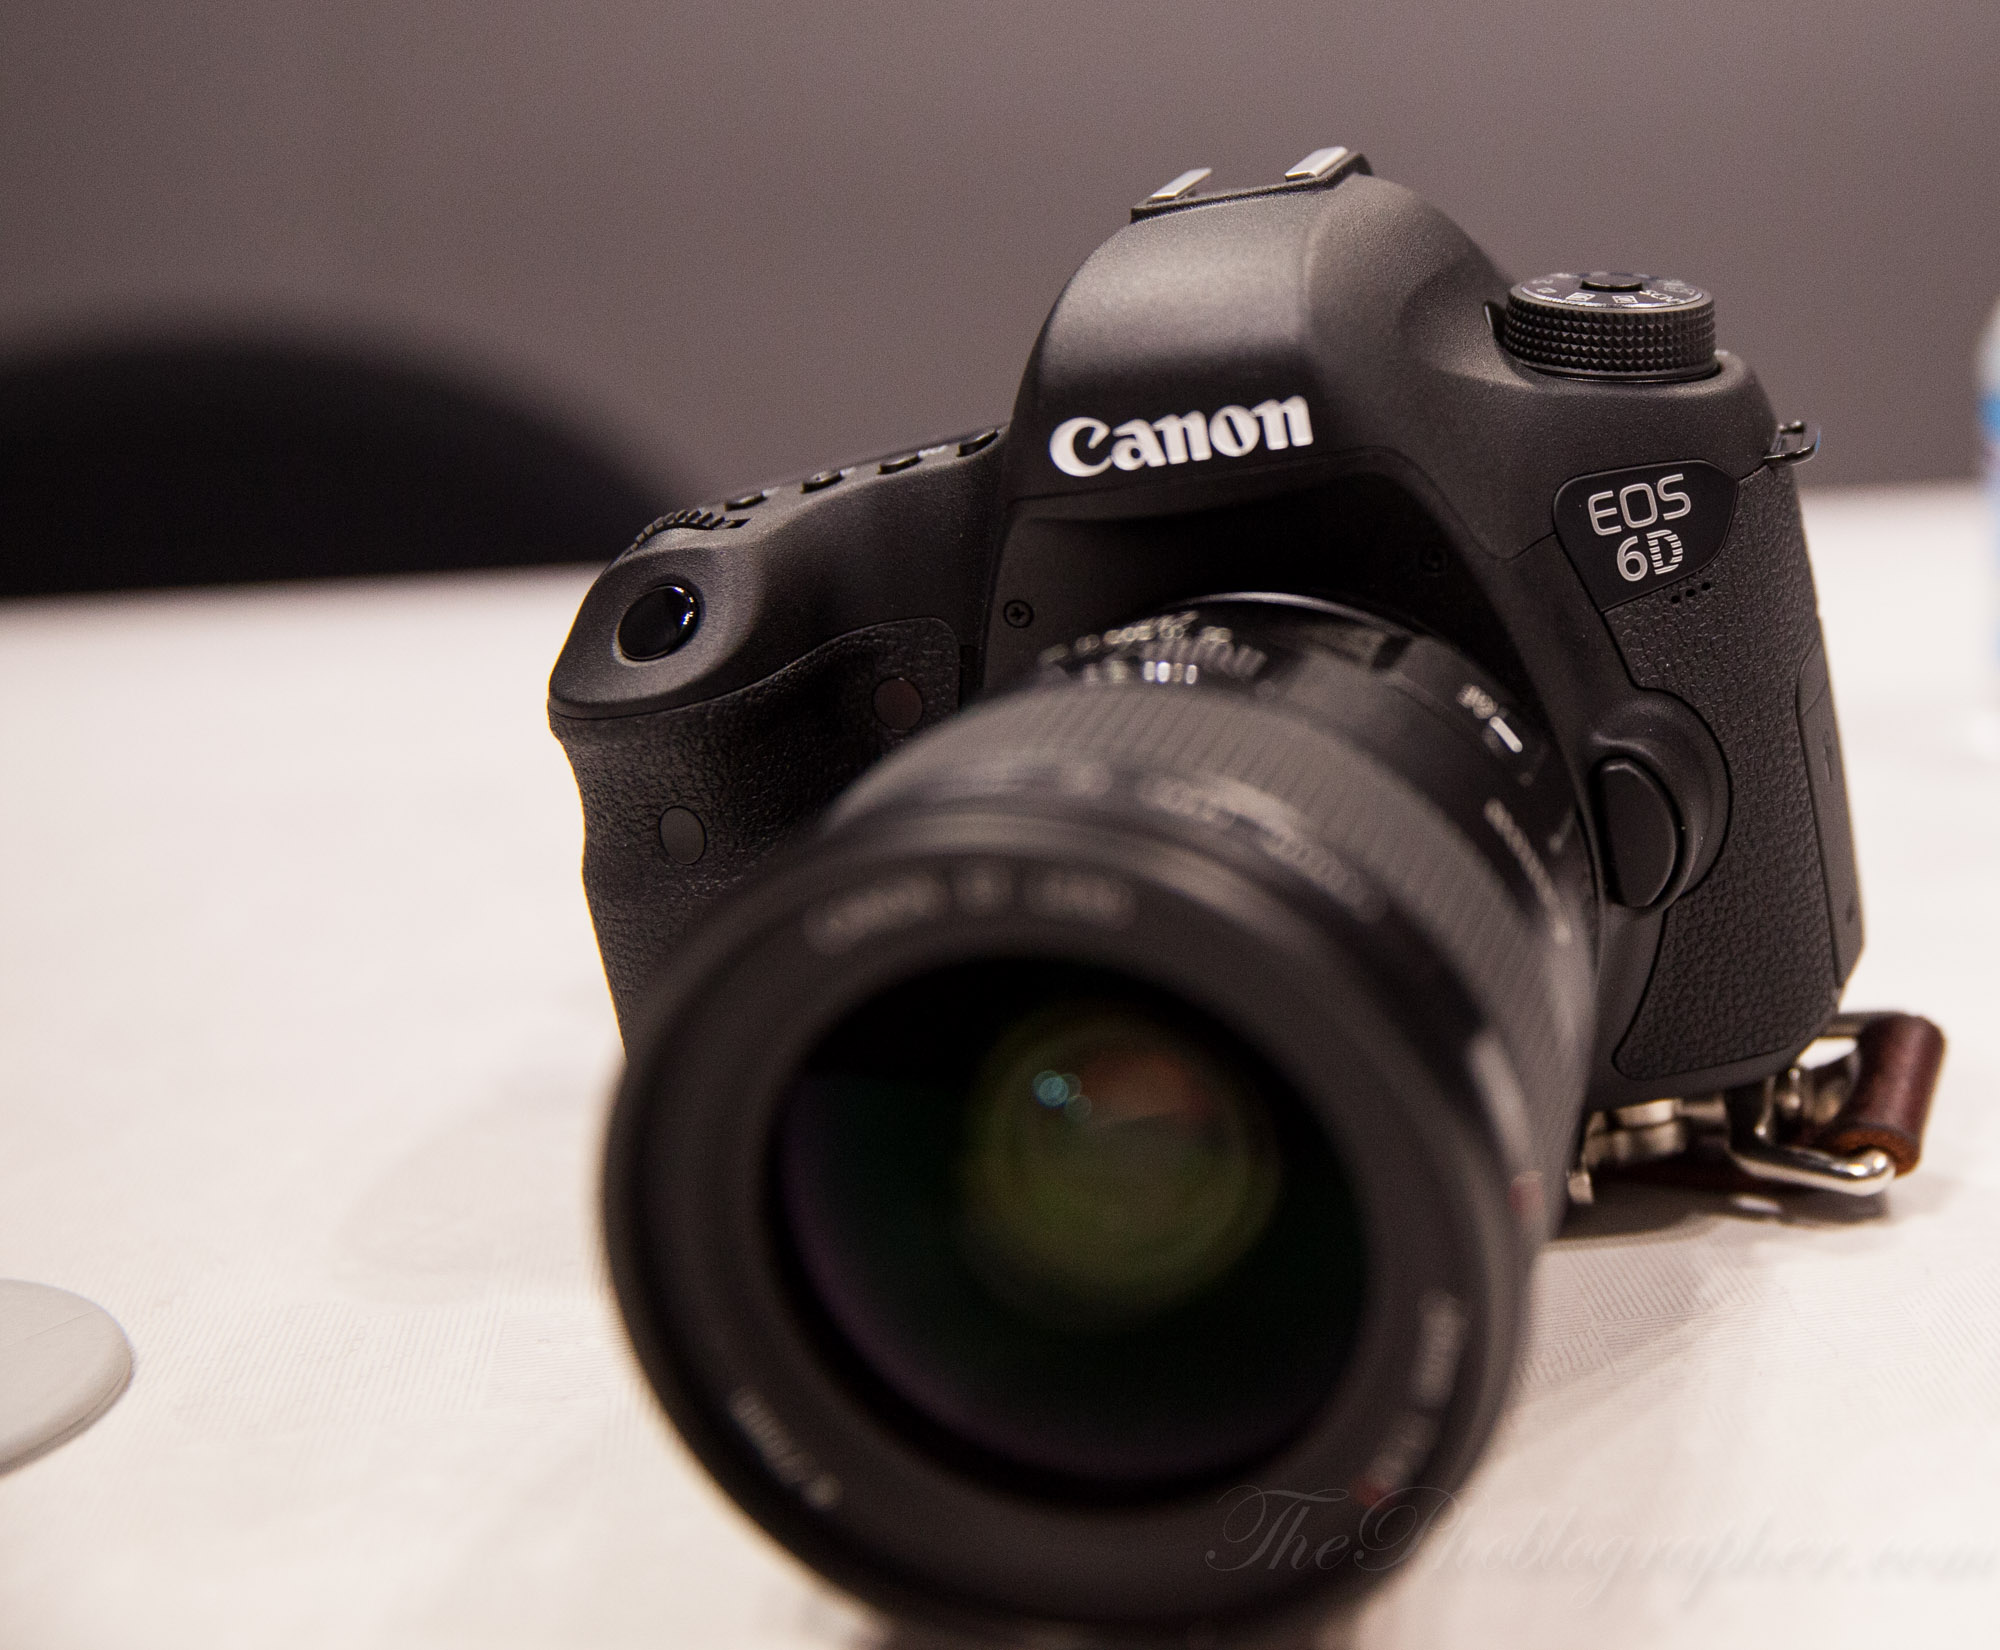 Chris-Gampat-The-Phoblographer-Canon-6D-Hands-on-review-first-impressions-product-images-6-of-6ISO-1600.jpg